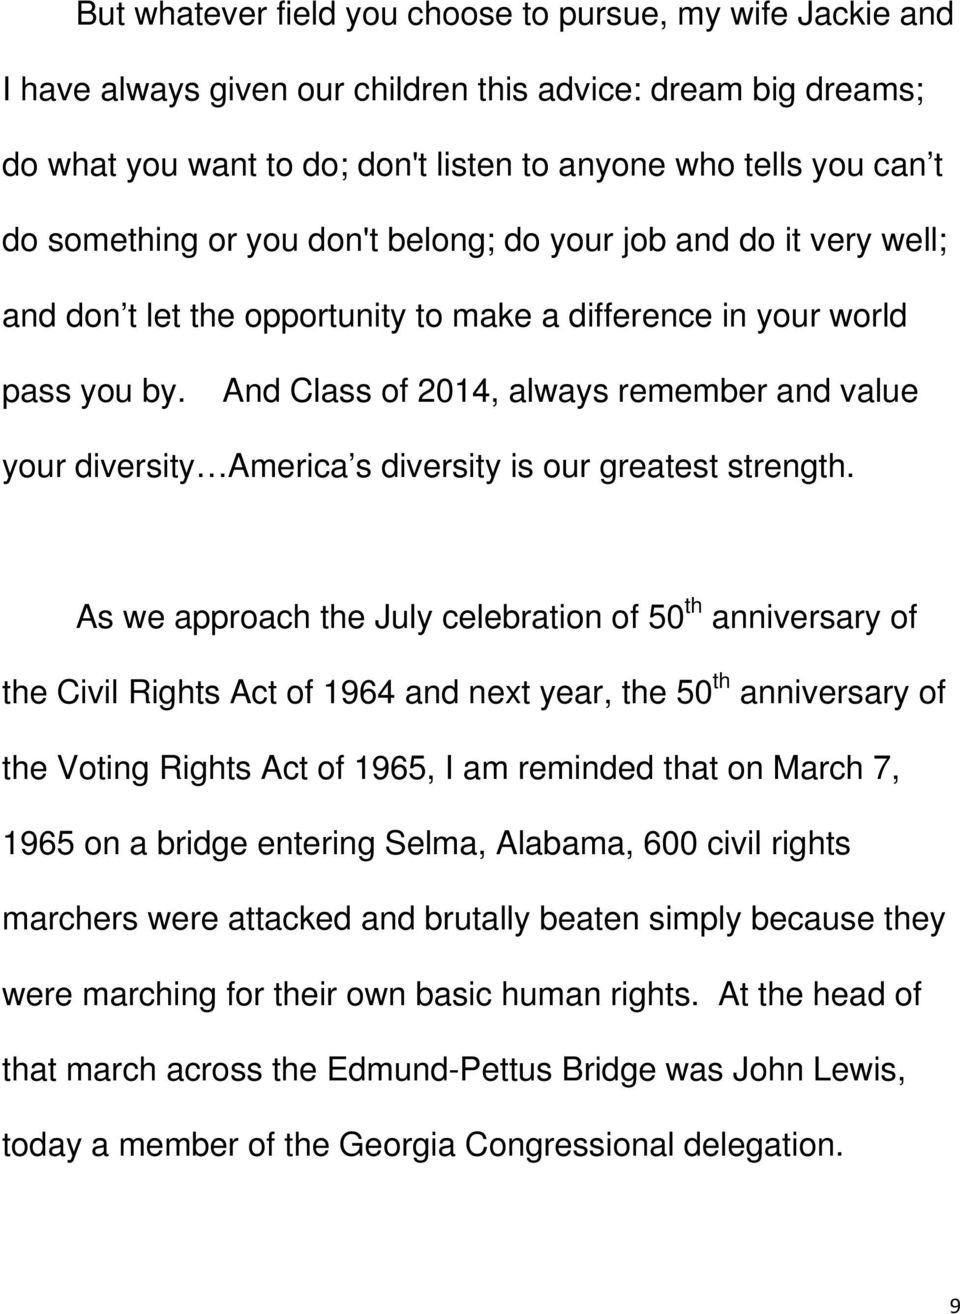 And Class of 2014, always remember and value your diversity America s diversity is our greatest strength.